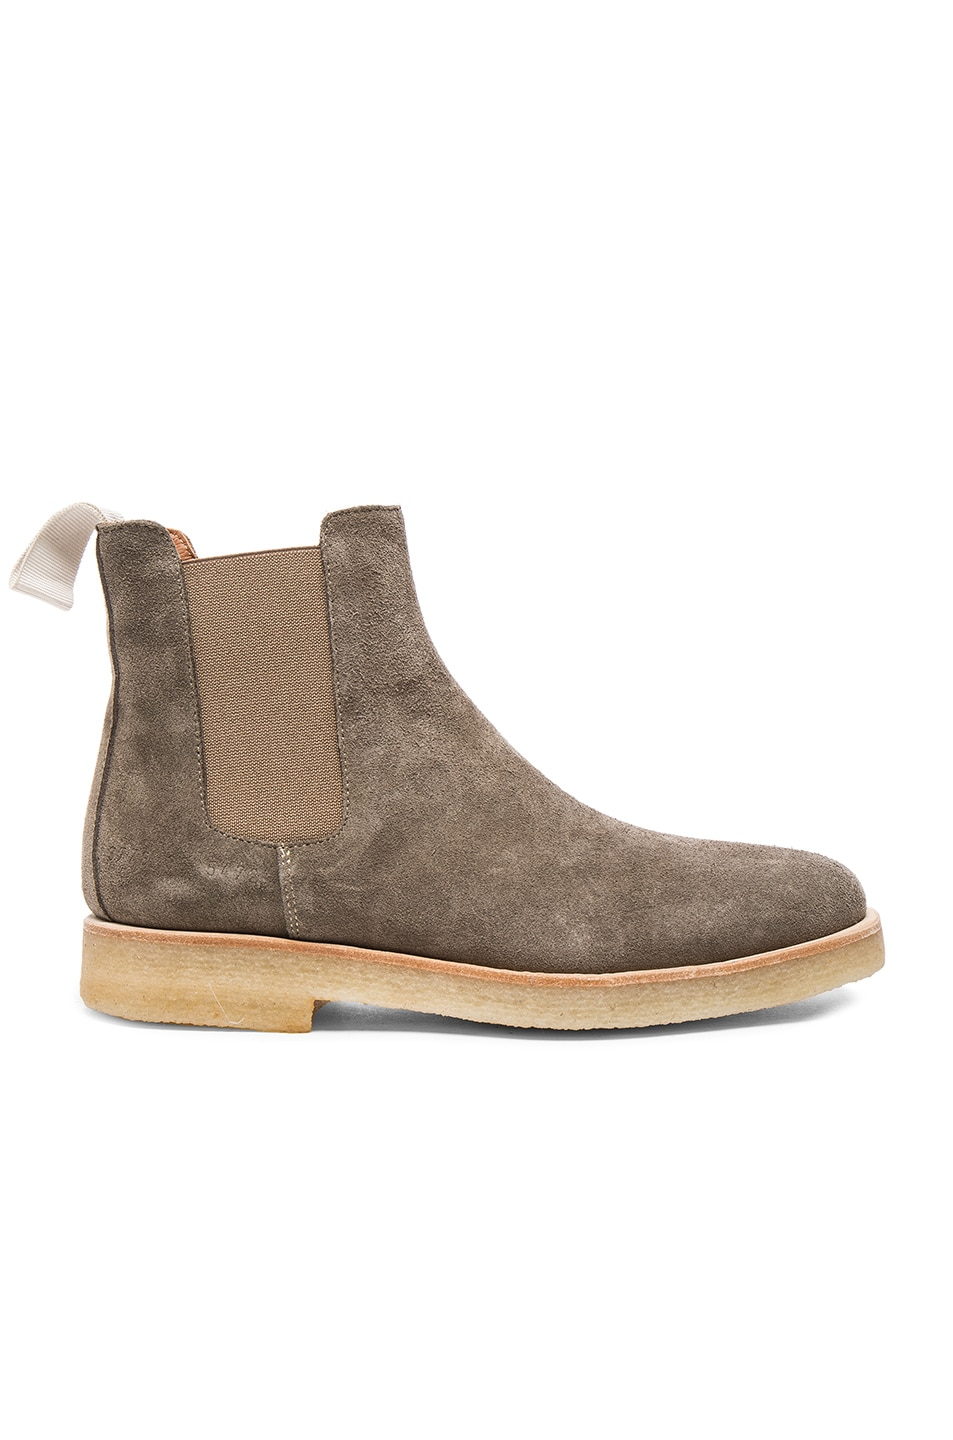 Image 1 of Common Projects Suede Chelsea Boots in Warm Grey